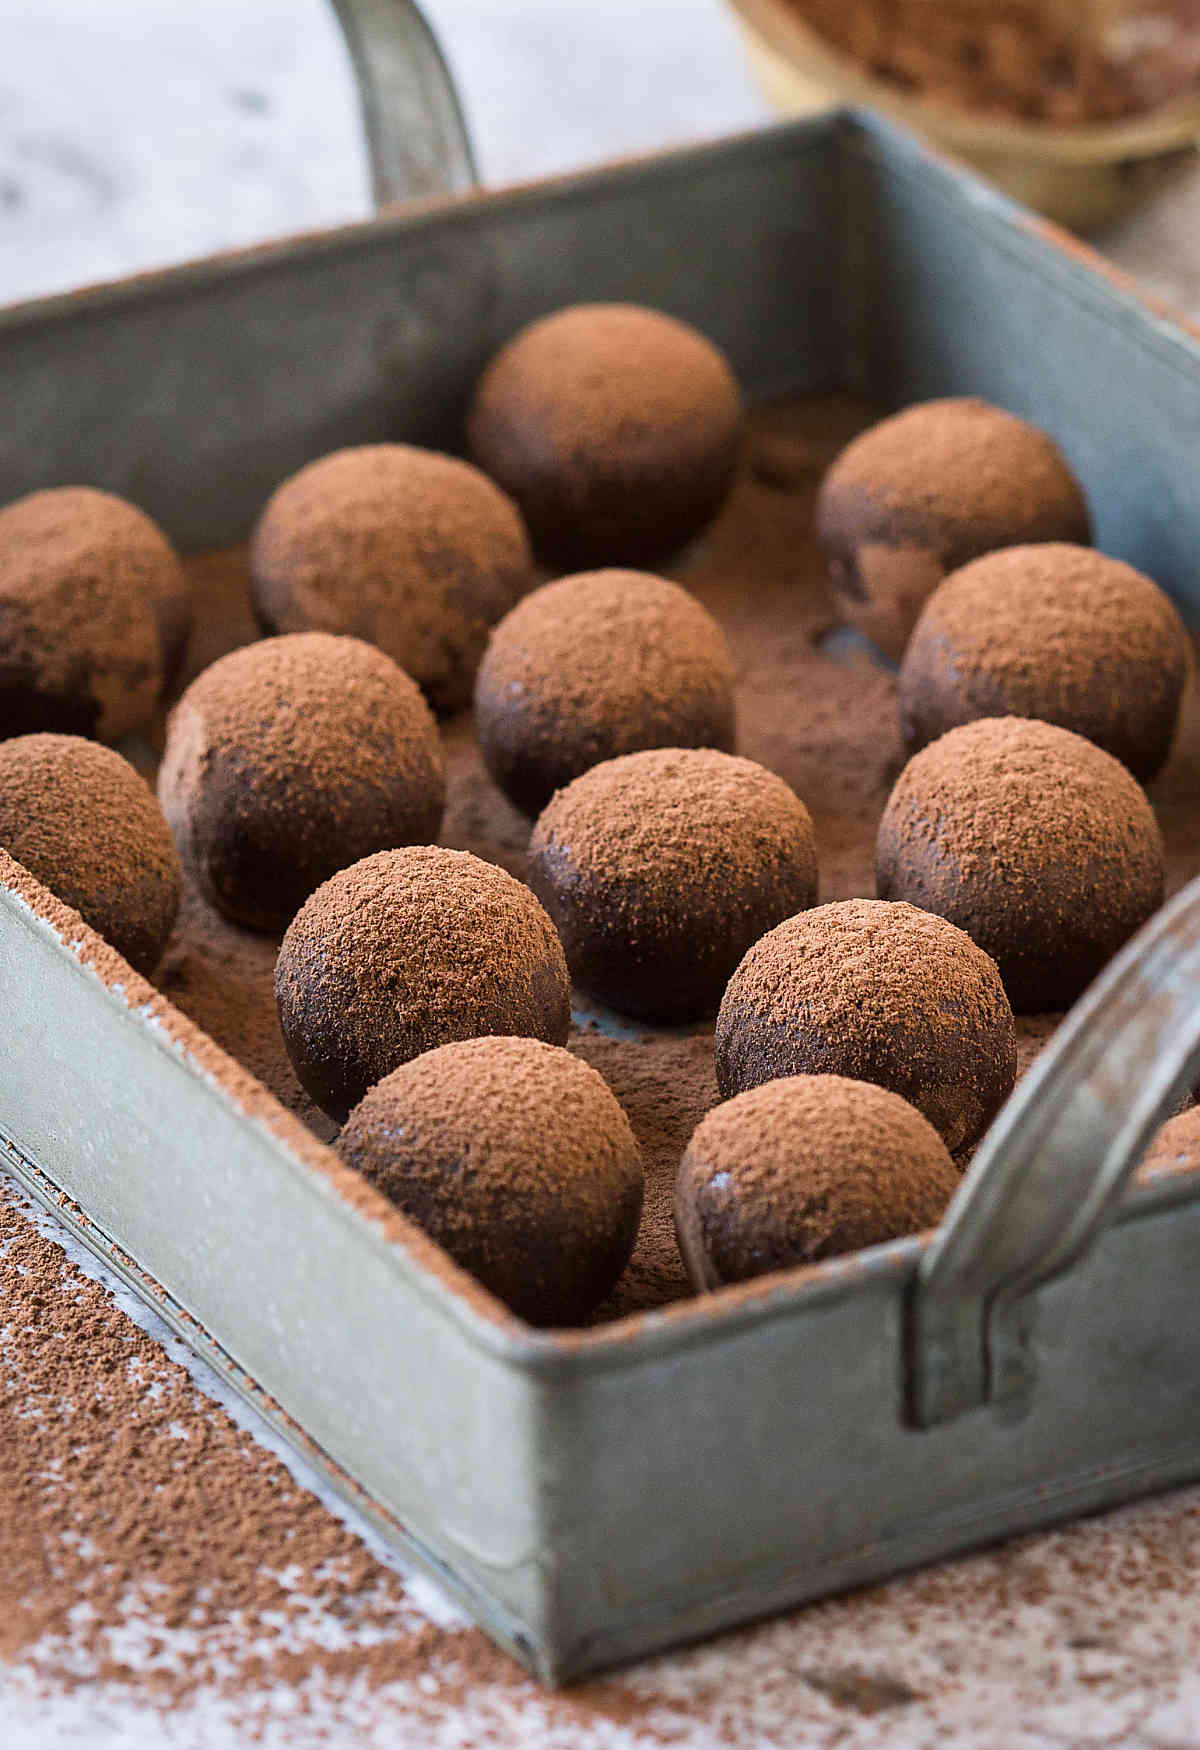 Healthy homemade delicious and nutritious Almond Chocolate Truffles. | #truffles #chocolatetruffles #vegantruffles #almondtruffles